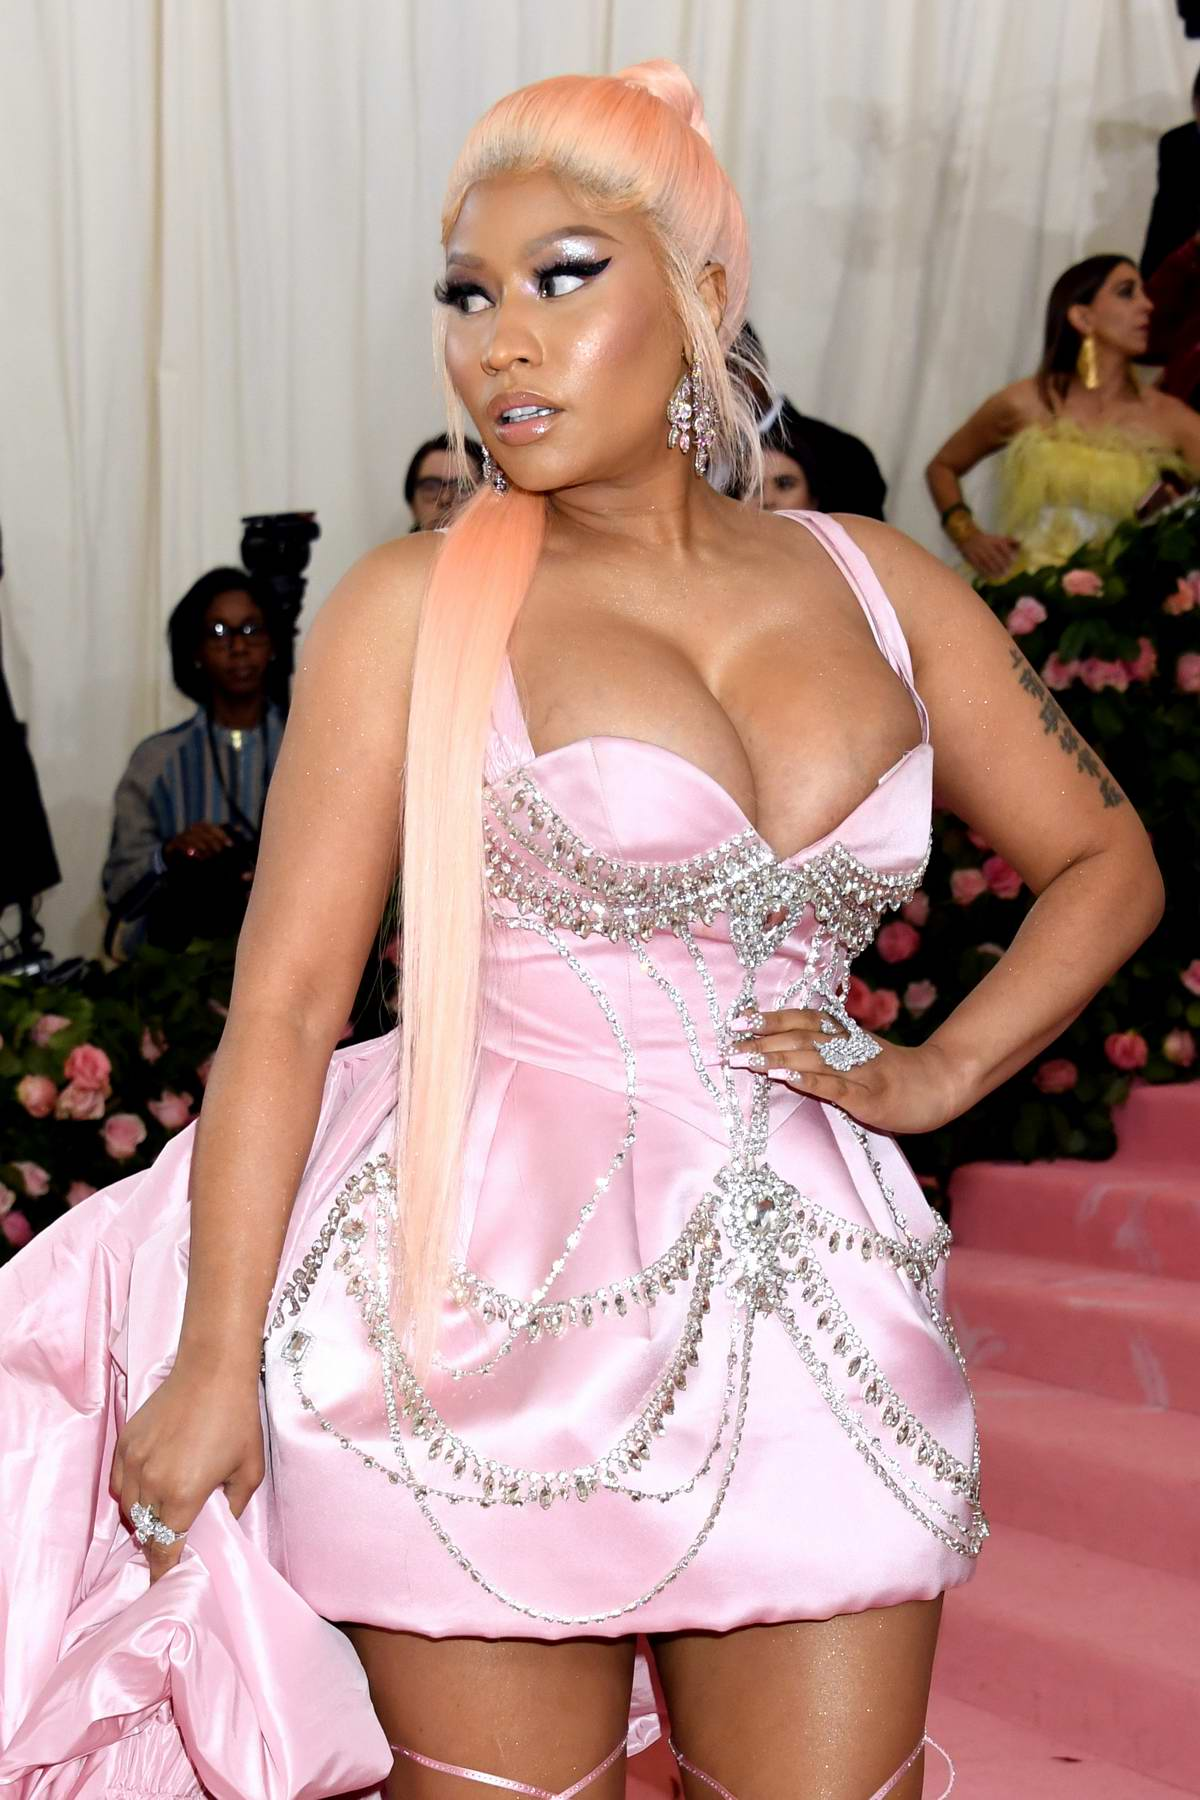 Nicki Minaj attends The 2019 Met Gala Celebrating Camp: Notes on Fashion in New York City